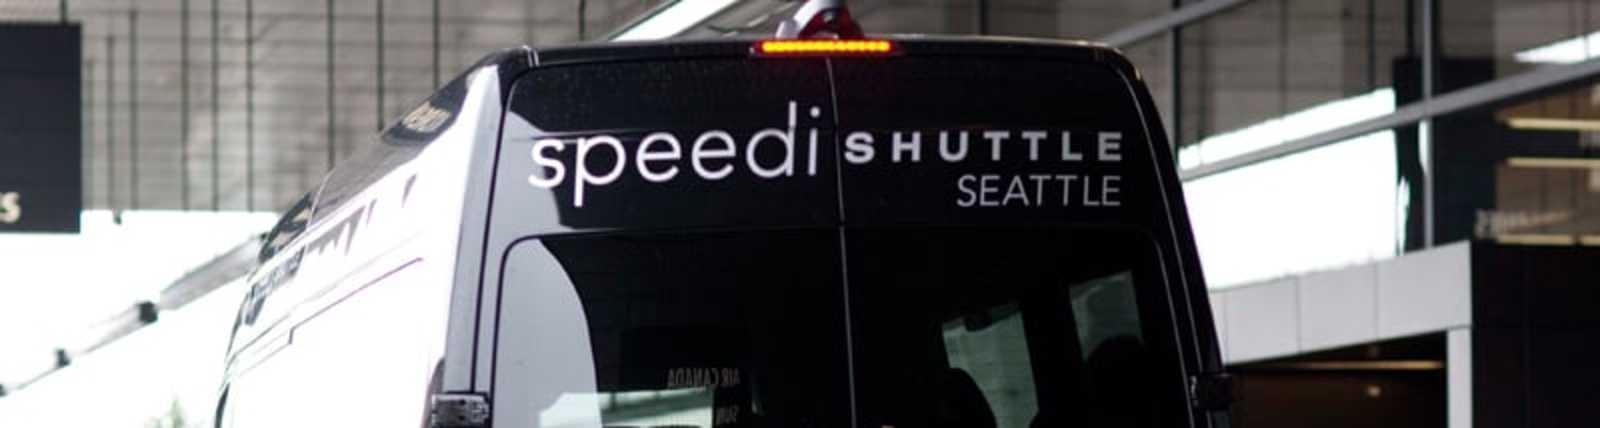 SpeediShuttle Seattle